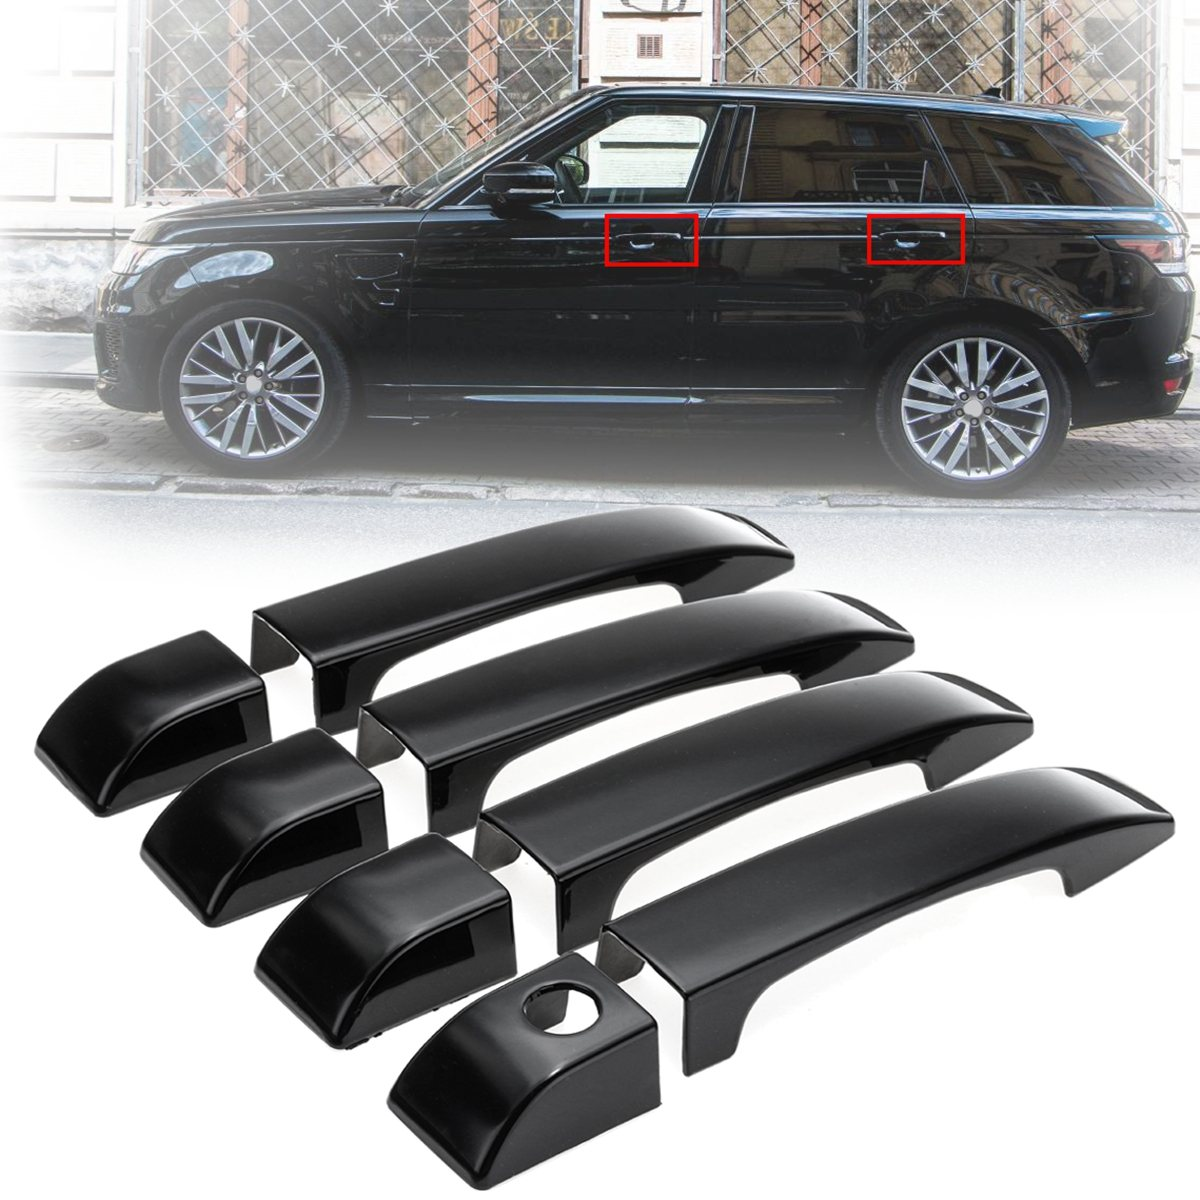 8pcs Gloss Black Door Handle Covers Trim For Land Rover Range L322 2002 2003 2004 2005 2006 2007 2008 2009 2010 2011 2012 front right car fog light lr for land rover discovery 2 2003 2004 range rover 2006 2009 range rover sport lr3 2005 2009